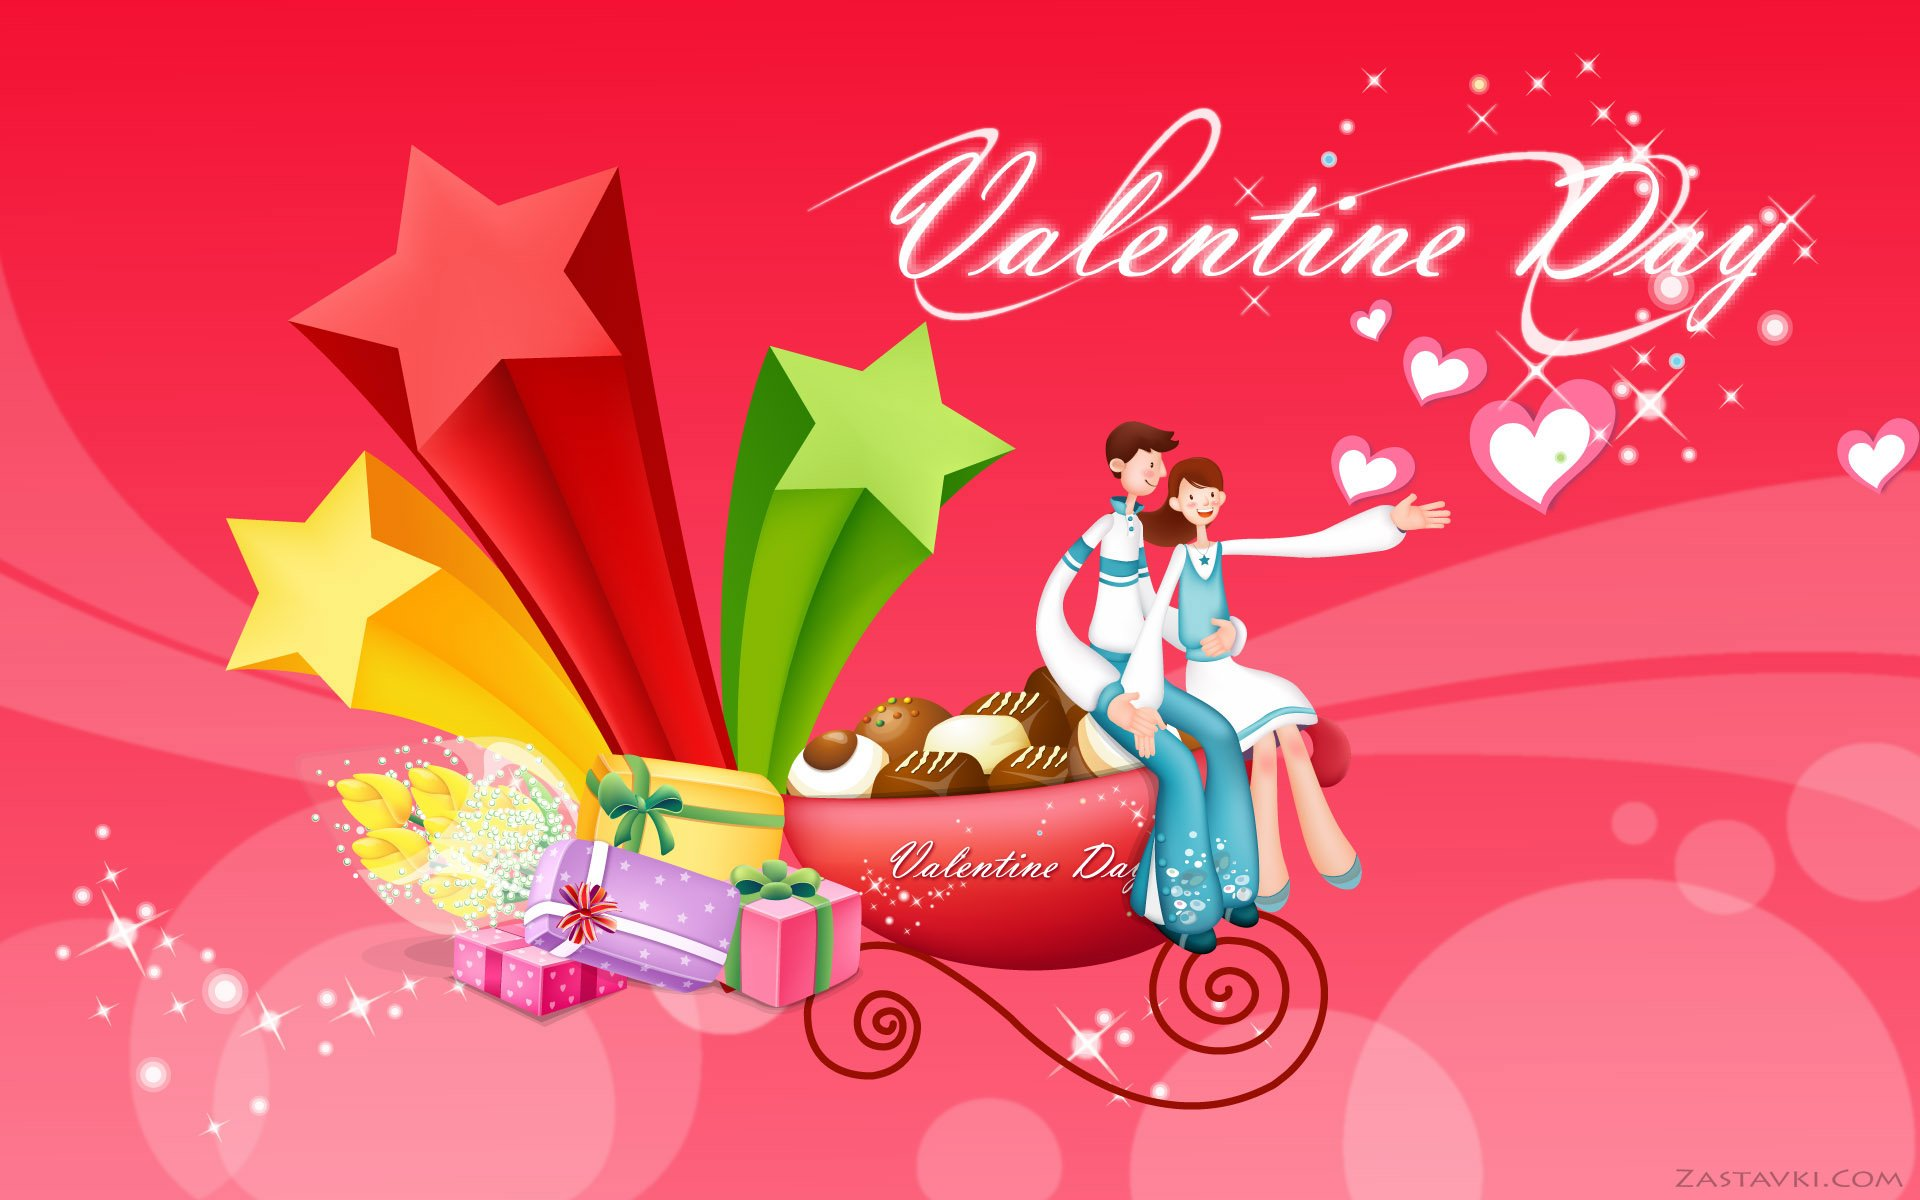 valentines day hd wallpaper